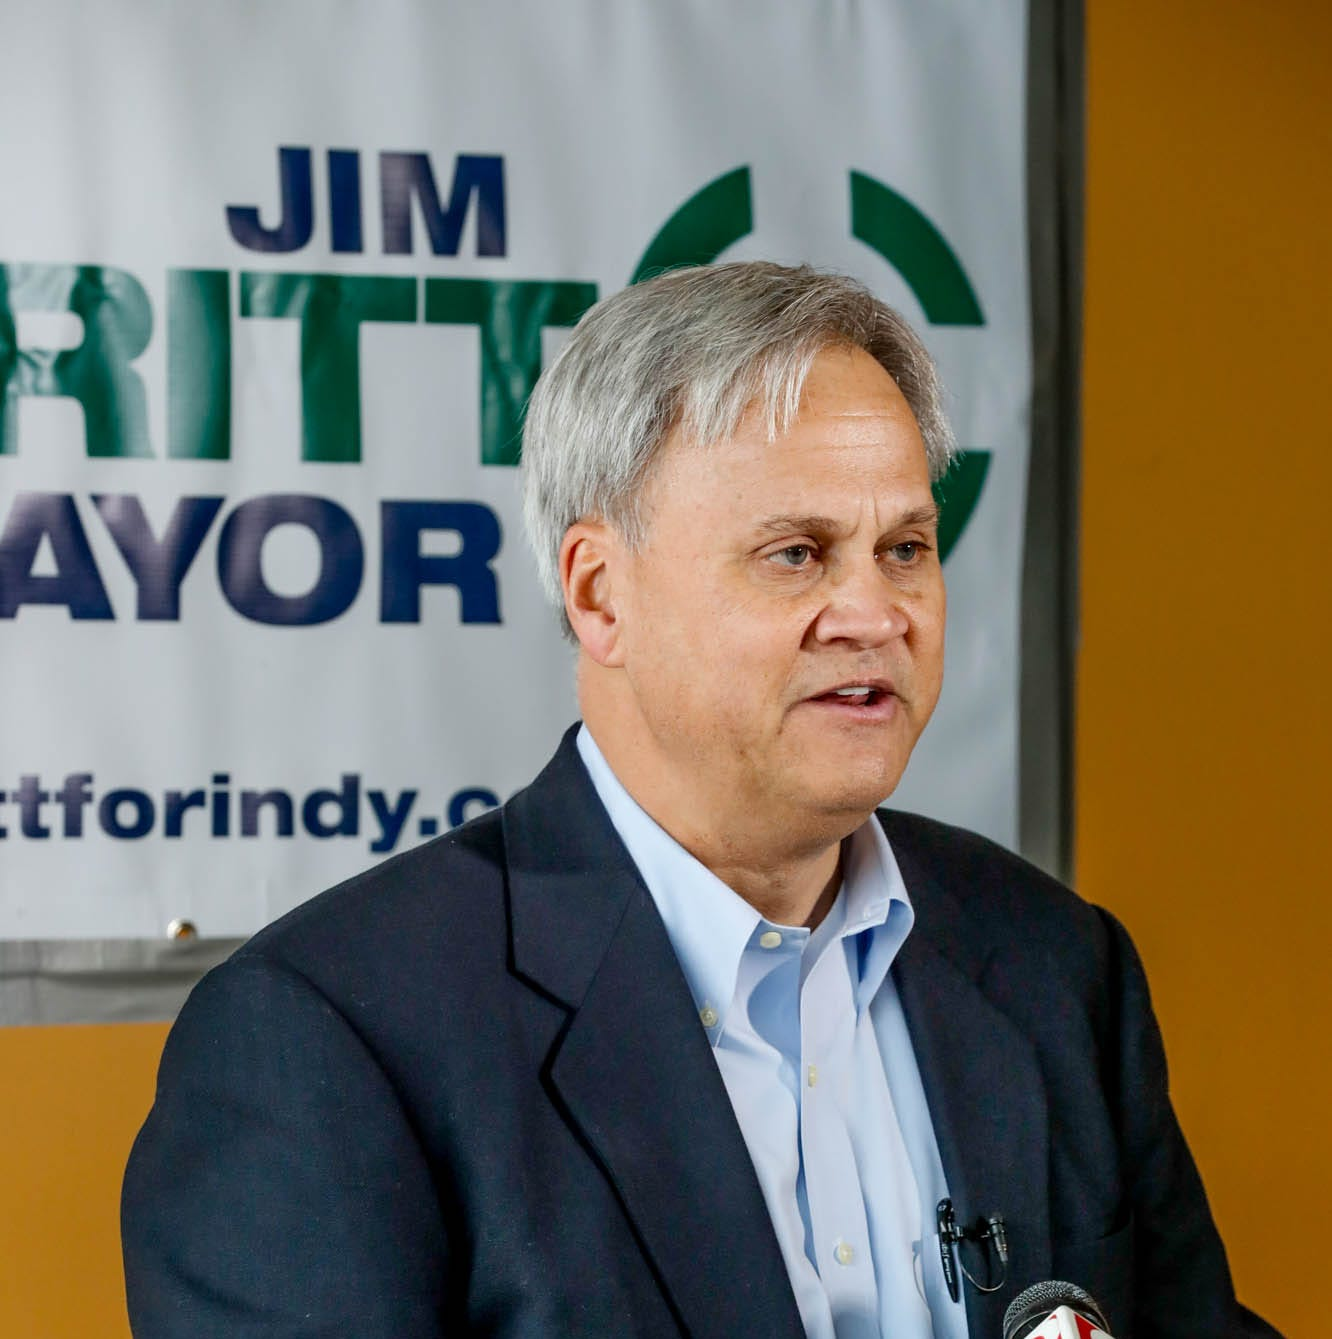 Sen. Jim Merritt, former chair of the Marion County GOP, announces his candidacy for Mayor of Indianapolis during a press conference held at  3902 N. Illinois Street, in Indianapolis on Thursday, Jan. 10, 2019.